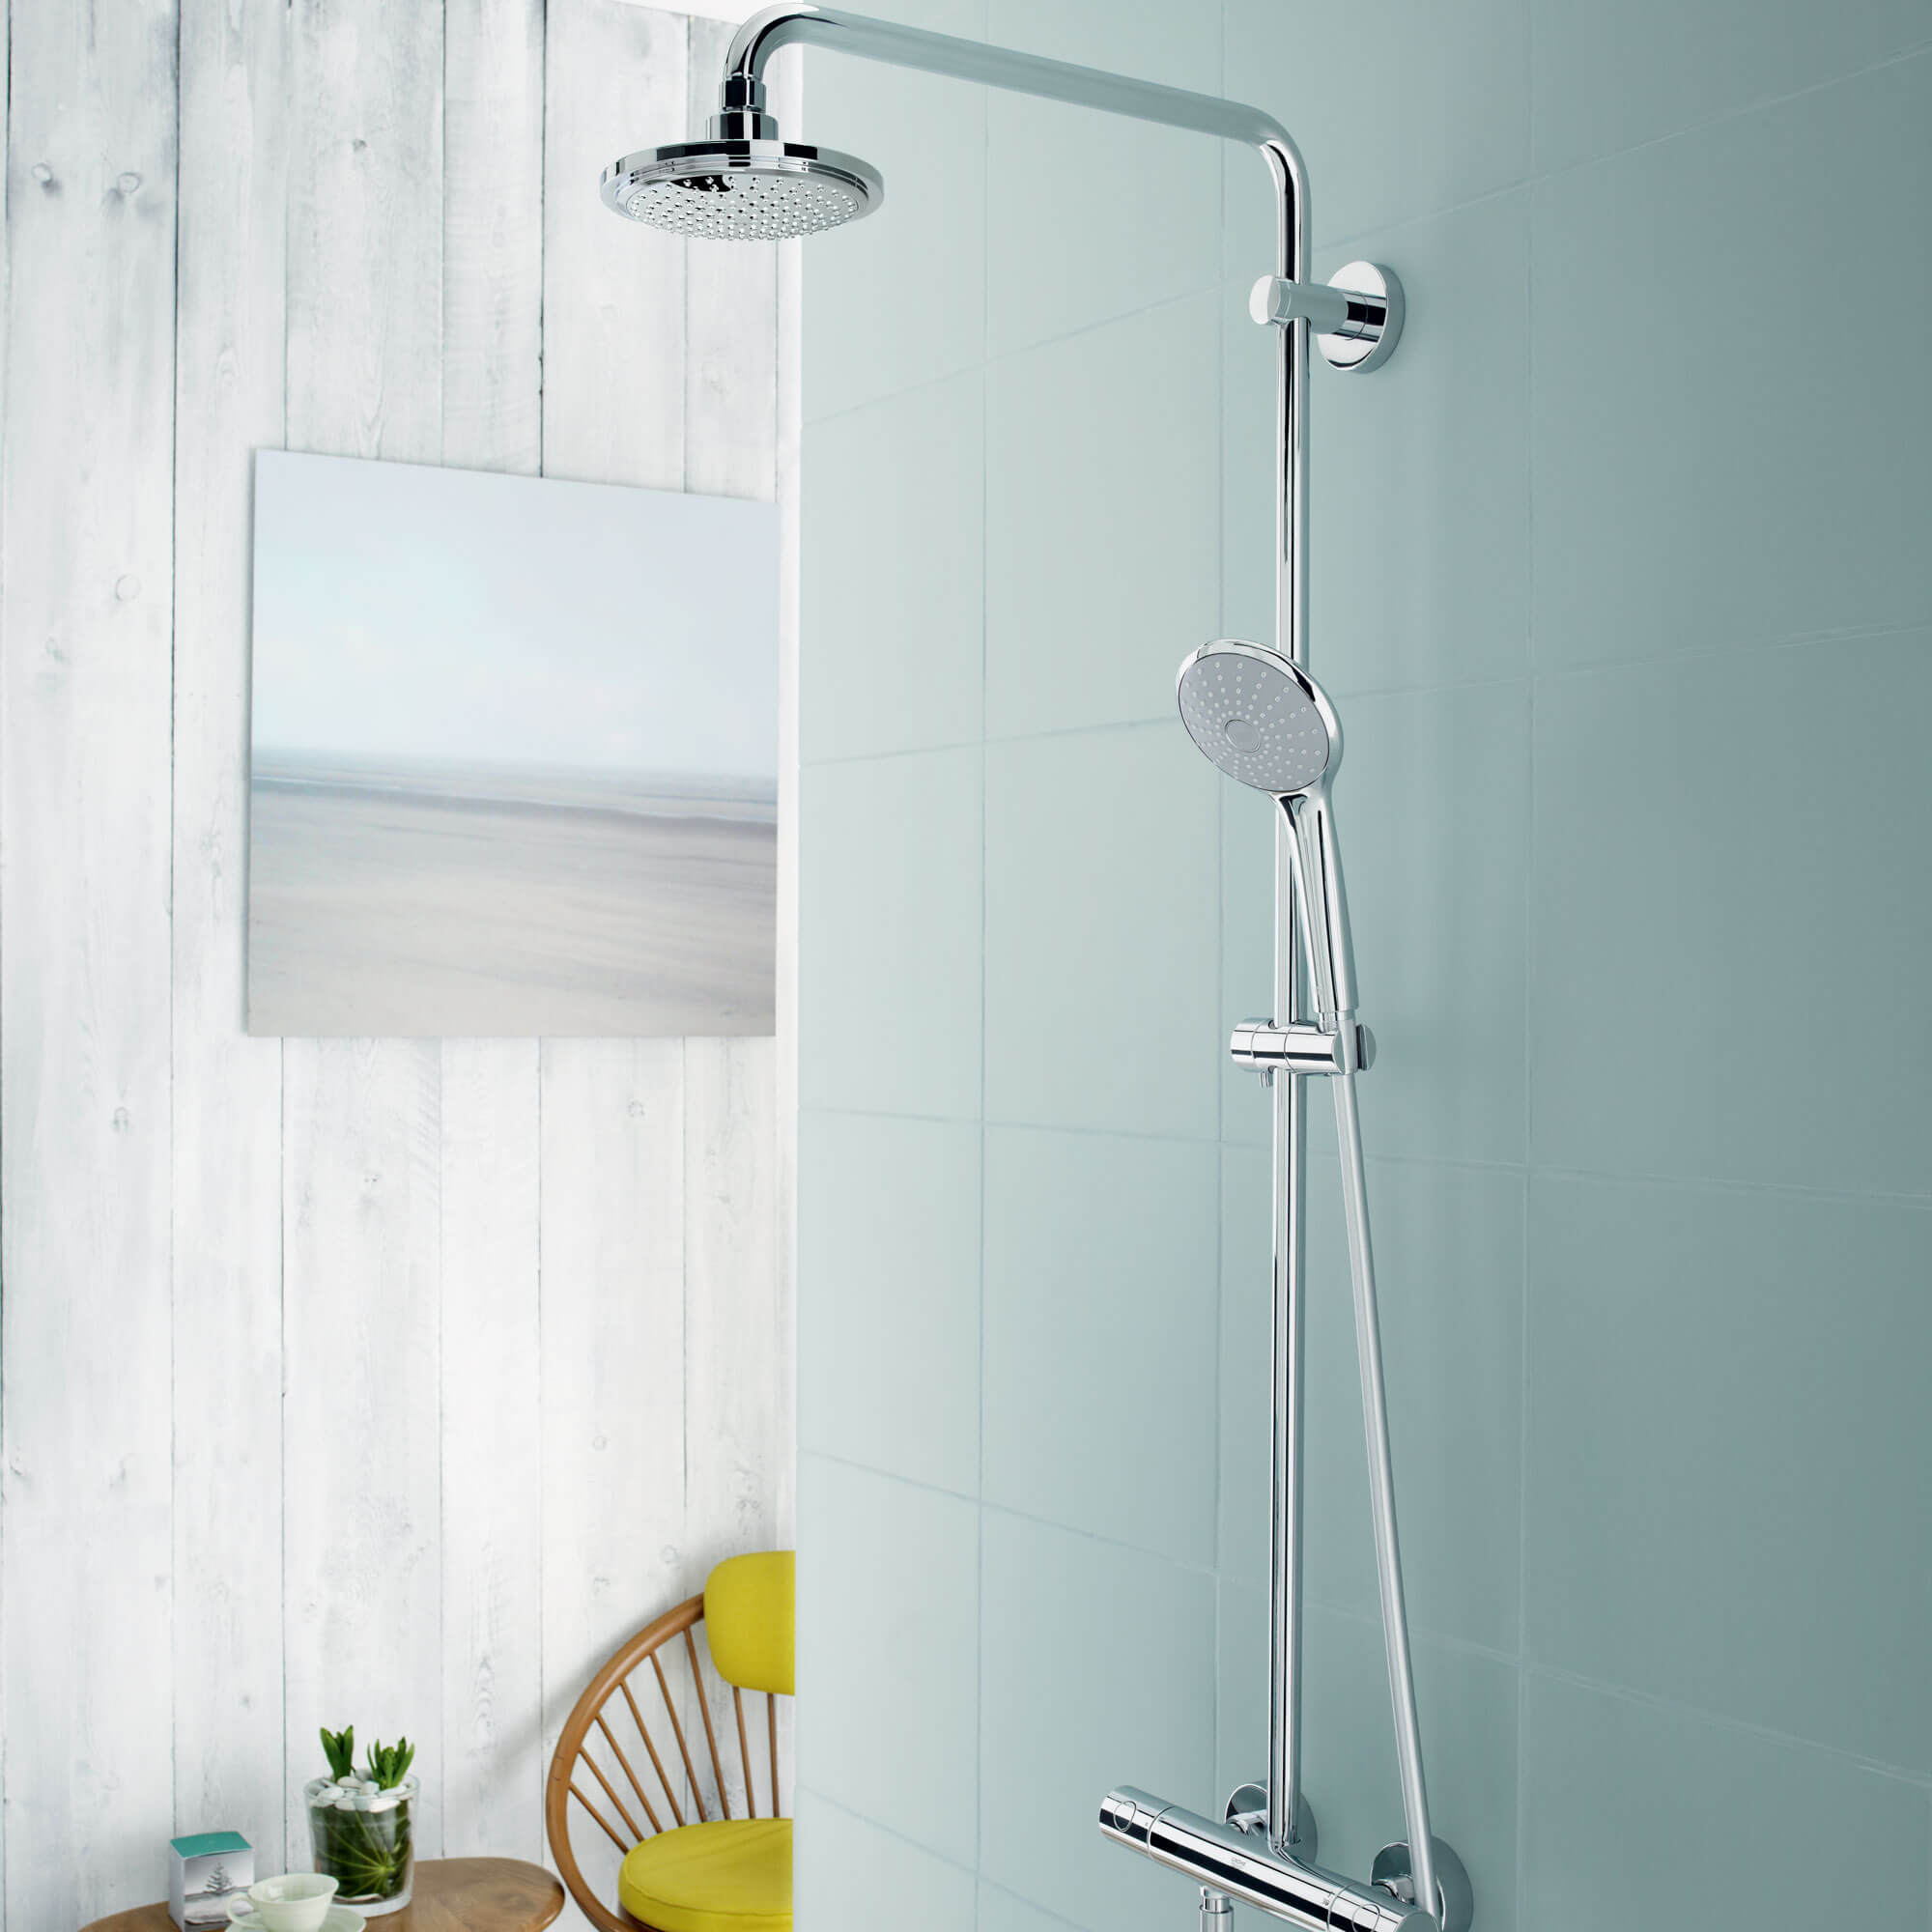 Image of the Euphoria shower system with a blue background.